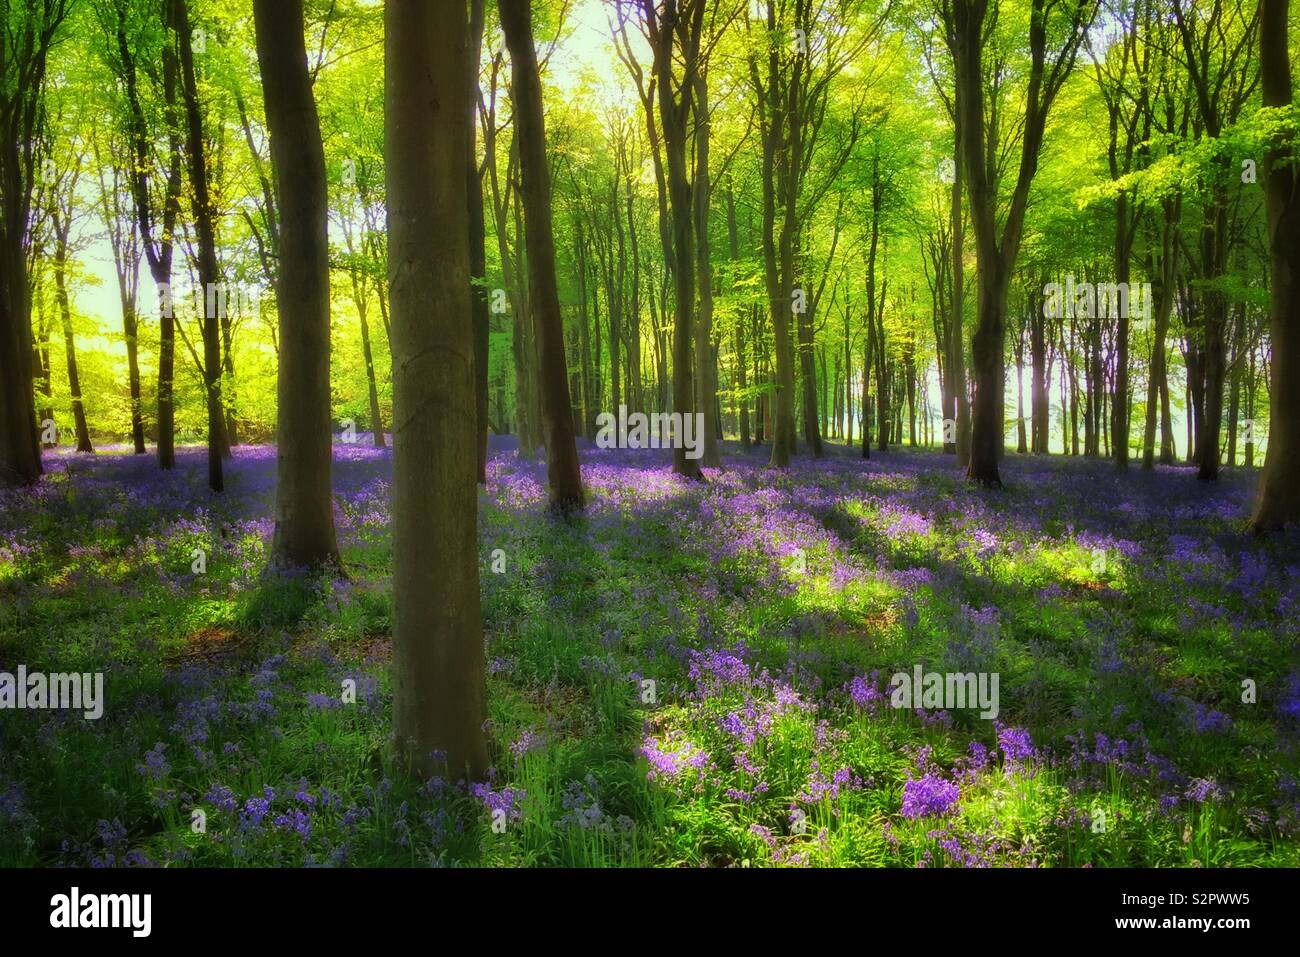 An atmospheric and feel good image of an British Woodland on Spring. The iconic Bluebell flowers (Hyacinthoides Non-Scripta) are in full bloom. Photo © COLIN HOSKINS. - Stock Image